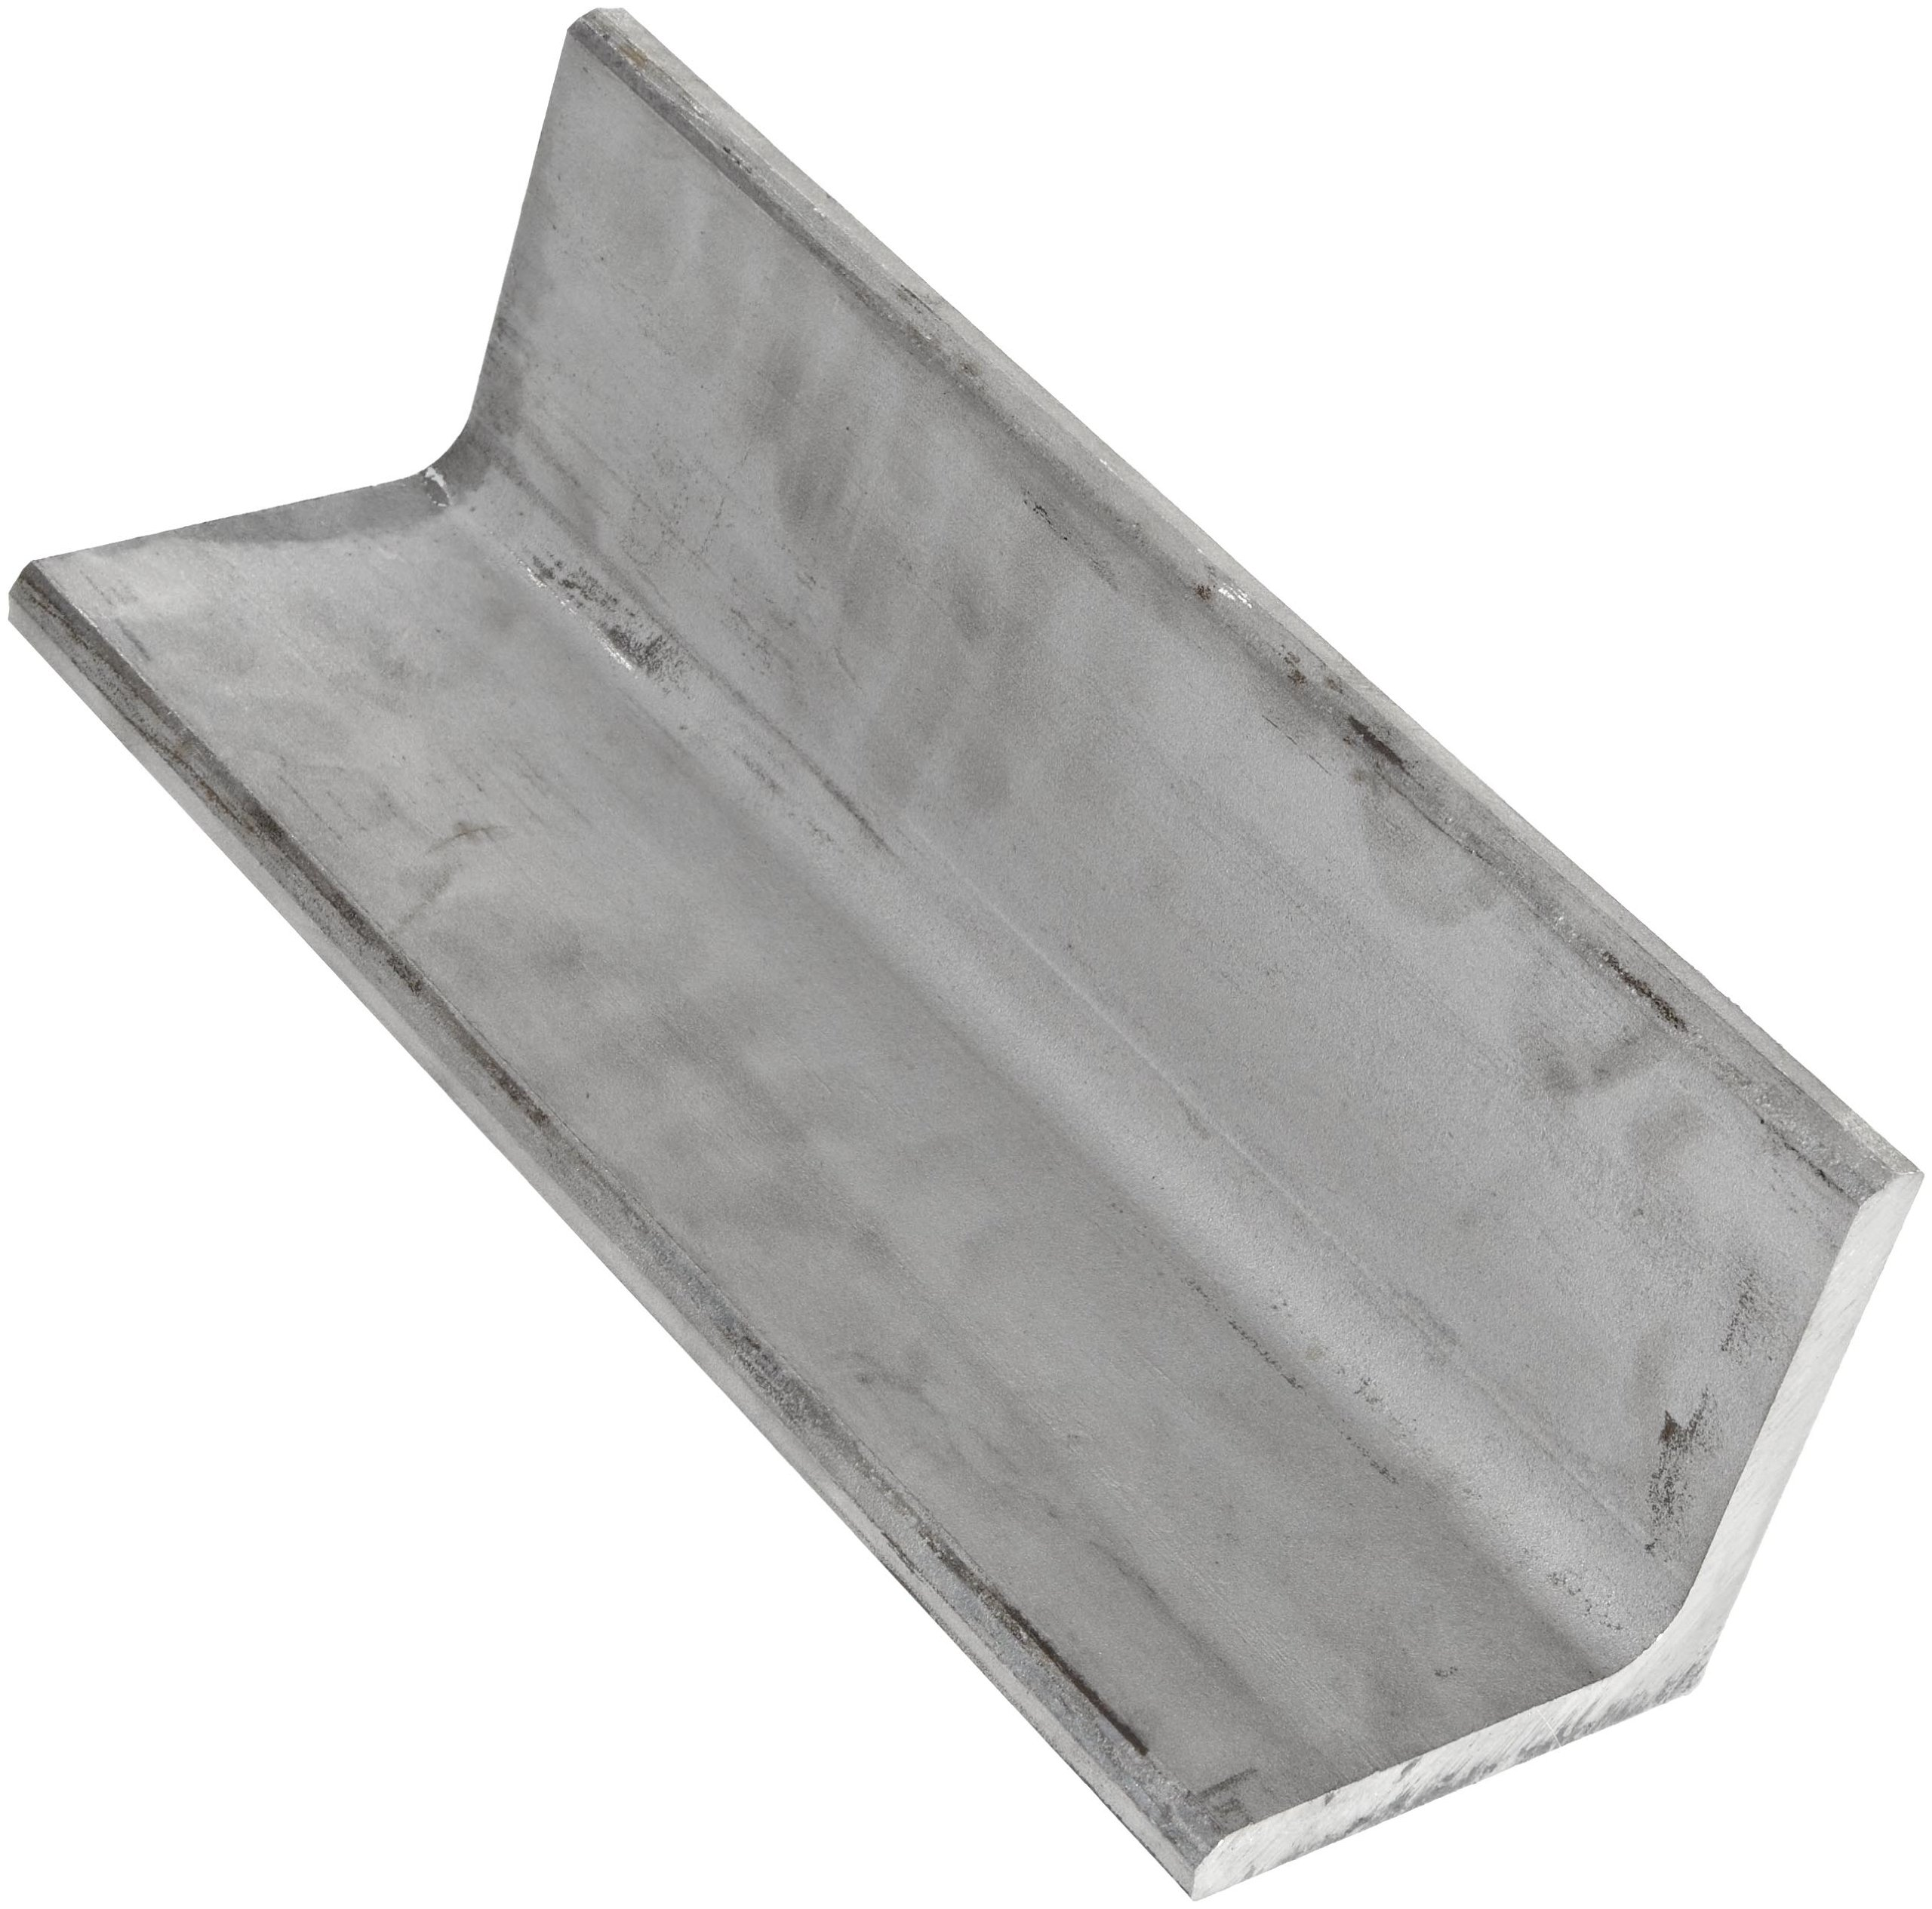 """316 Stainless Steel Angle, Unpolished (Mill) Finish, ASTM A276, Equal Leg Length, Rounded Corners, 1"""" Leg Lengths, 0.1875"""" Wall Thickness, 24"""" Length"""